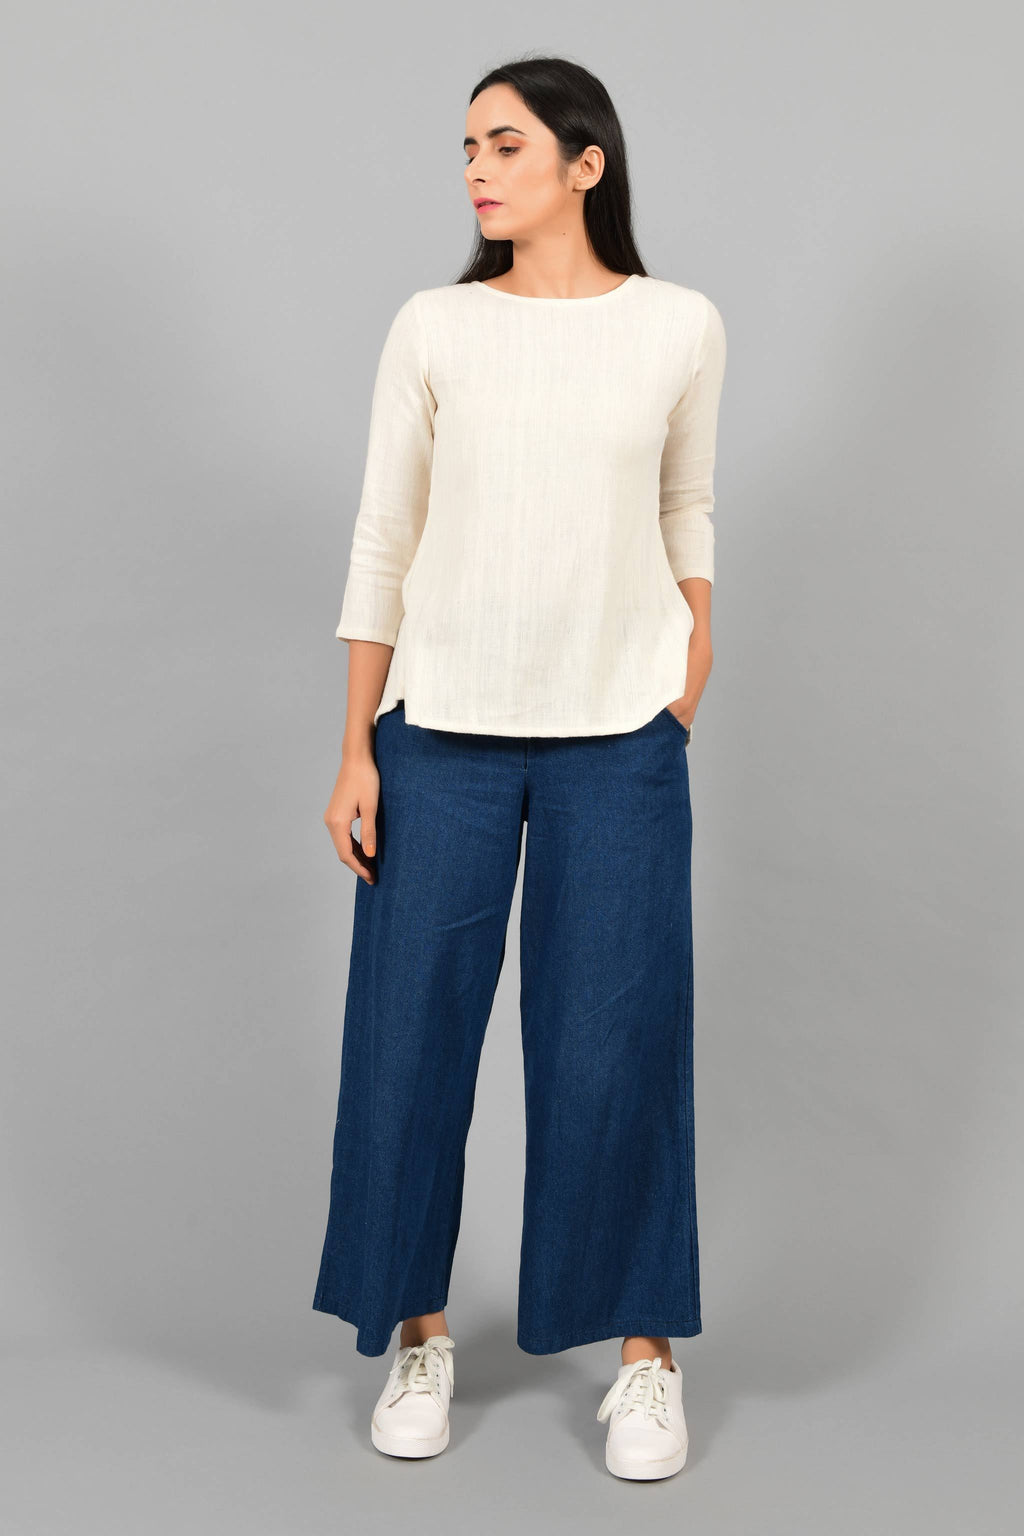 Front pose of an Indian female womenswear fashion model in an off-white Cashmere Cotton Top with box pleated back and quarter sleeves made using handspun and handwoven khadi cotton by Cotton Rack.